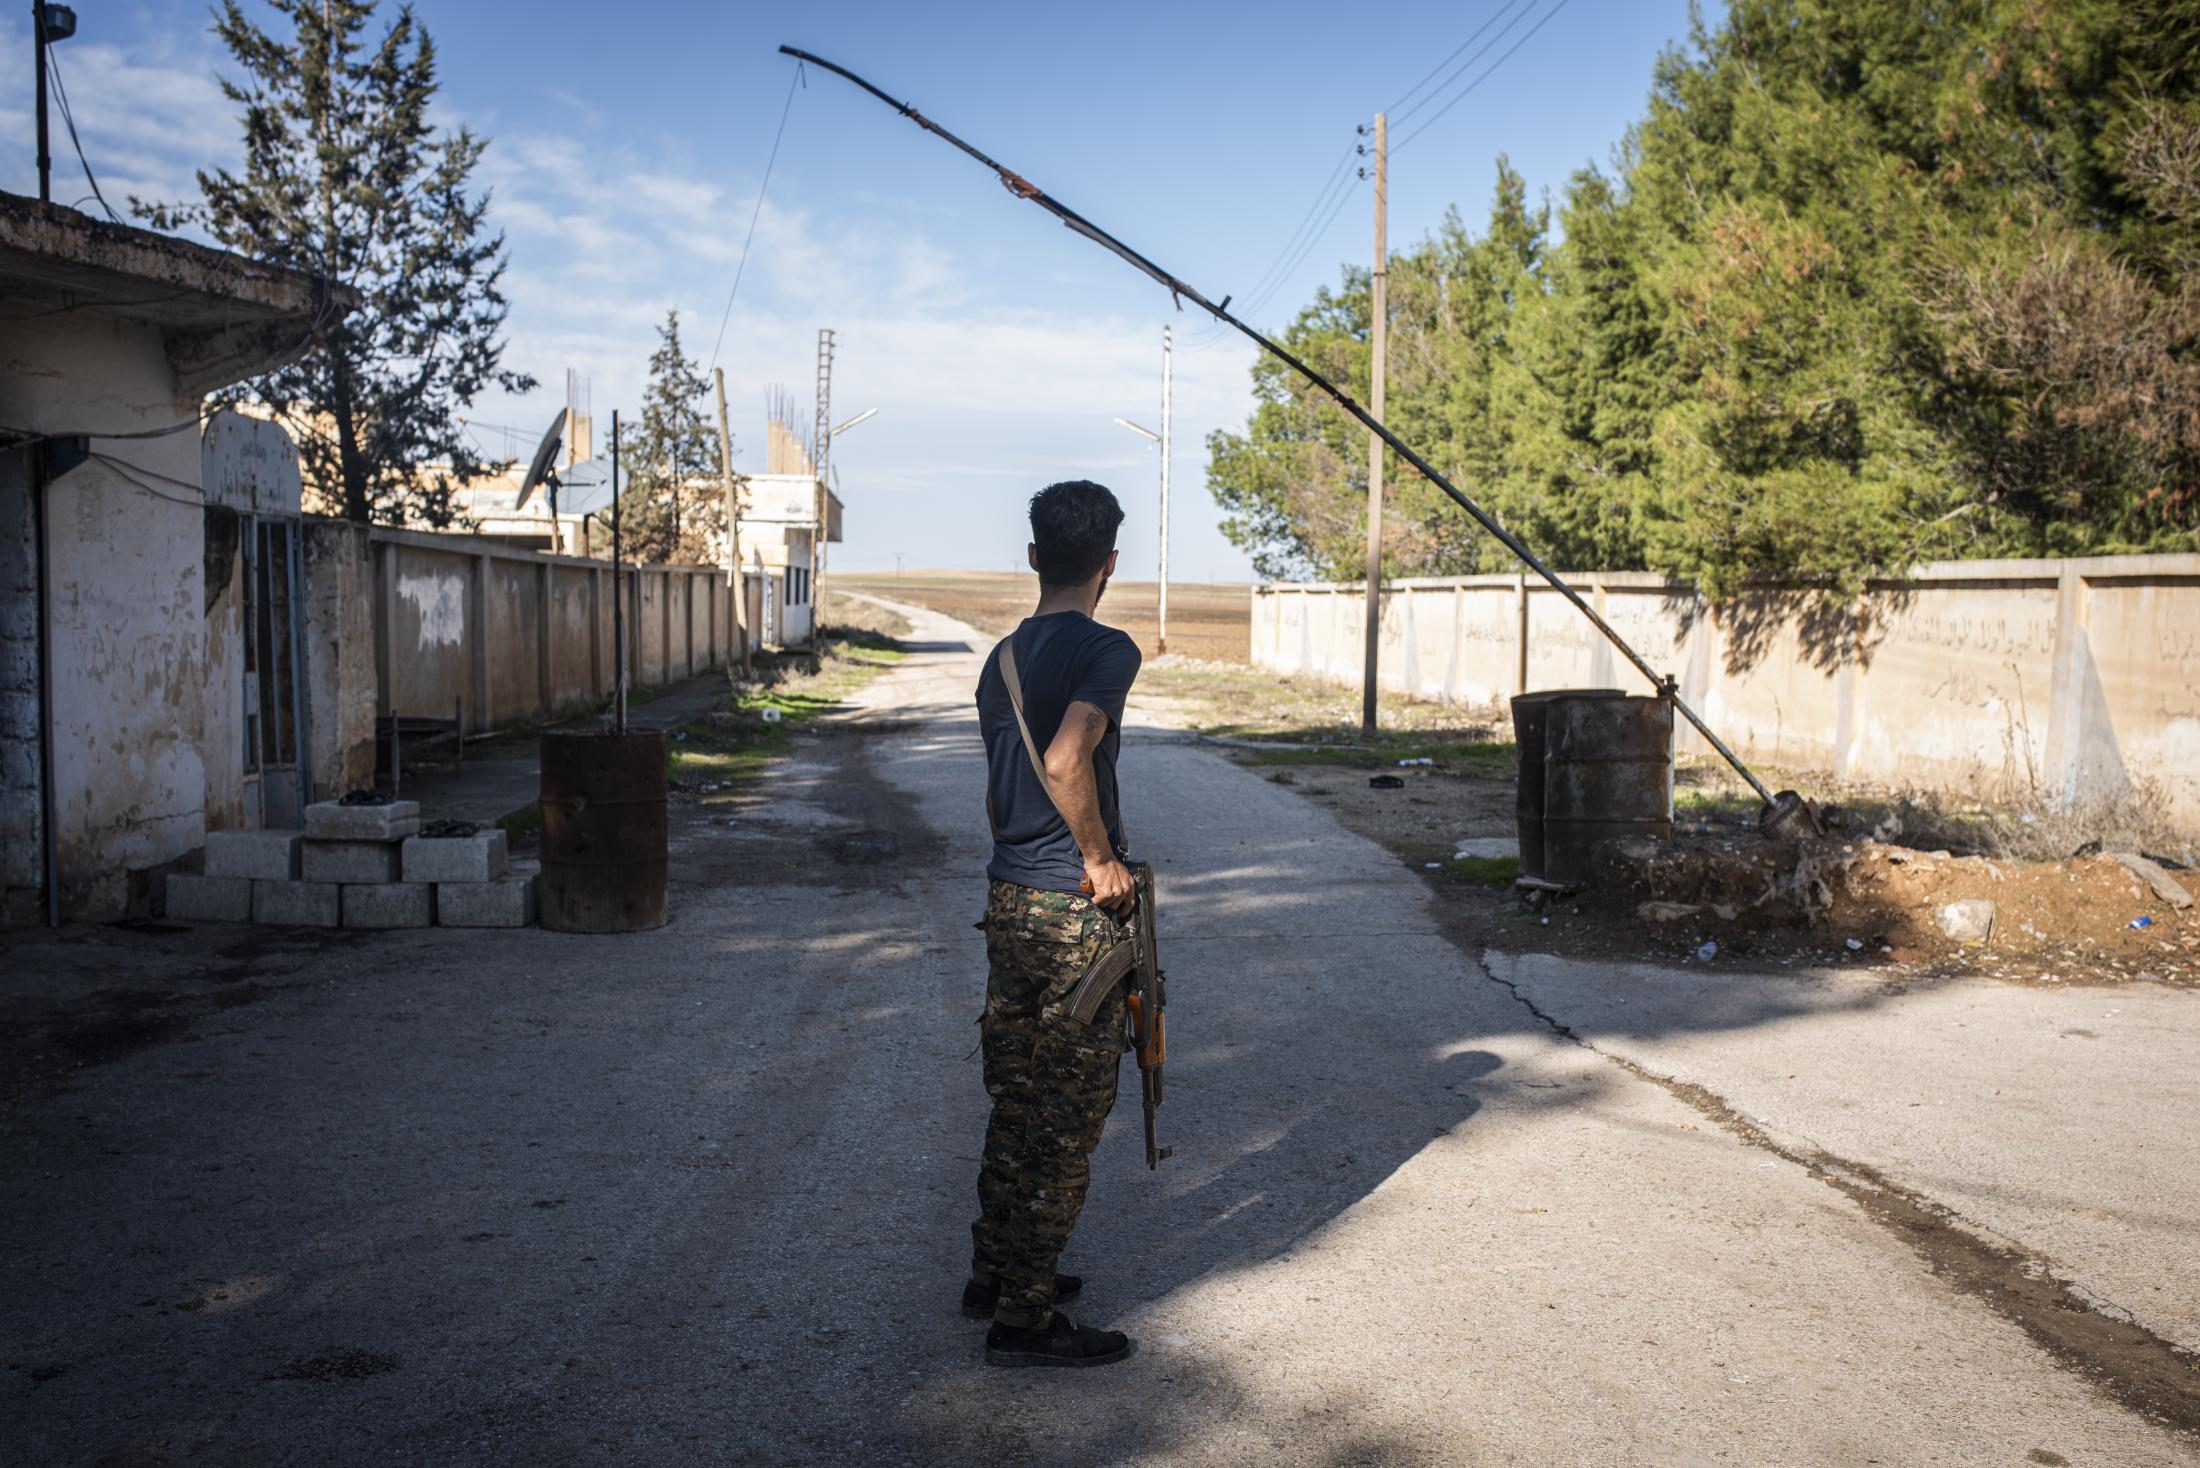 A christian militia soldier in the last checkpoint in the Tel Nasri frontline. After that point there is only open field where the yihadists supported by Turkish Army are trying to capture the town. After the withdrawal of US troops from northern Syria in October 2019, Turkey launched an offensive against the predominantly Kurdish areas in the northeast of the country along Islamist forces. Calls for war crimes investigations into the conduct of Ankara-backed militias are mounting ever since. (Andoni Lubaki / Euskal Fondoa)